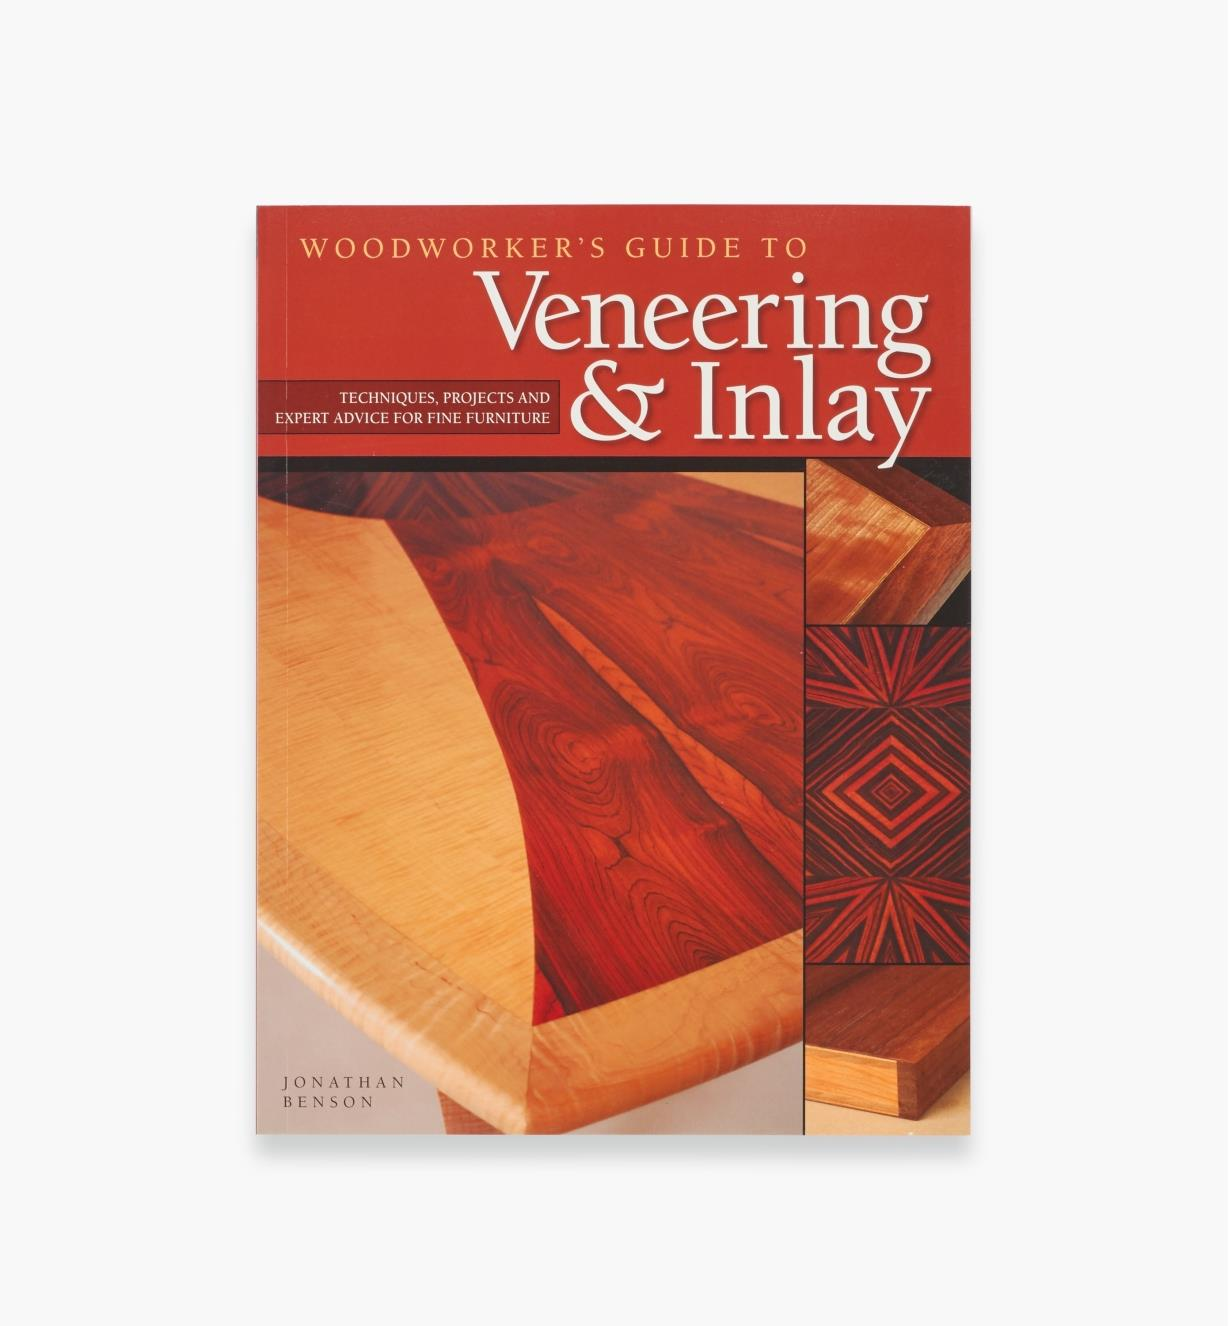 49L5062 - Woodworker's Guide to Veneering & Inlay